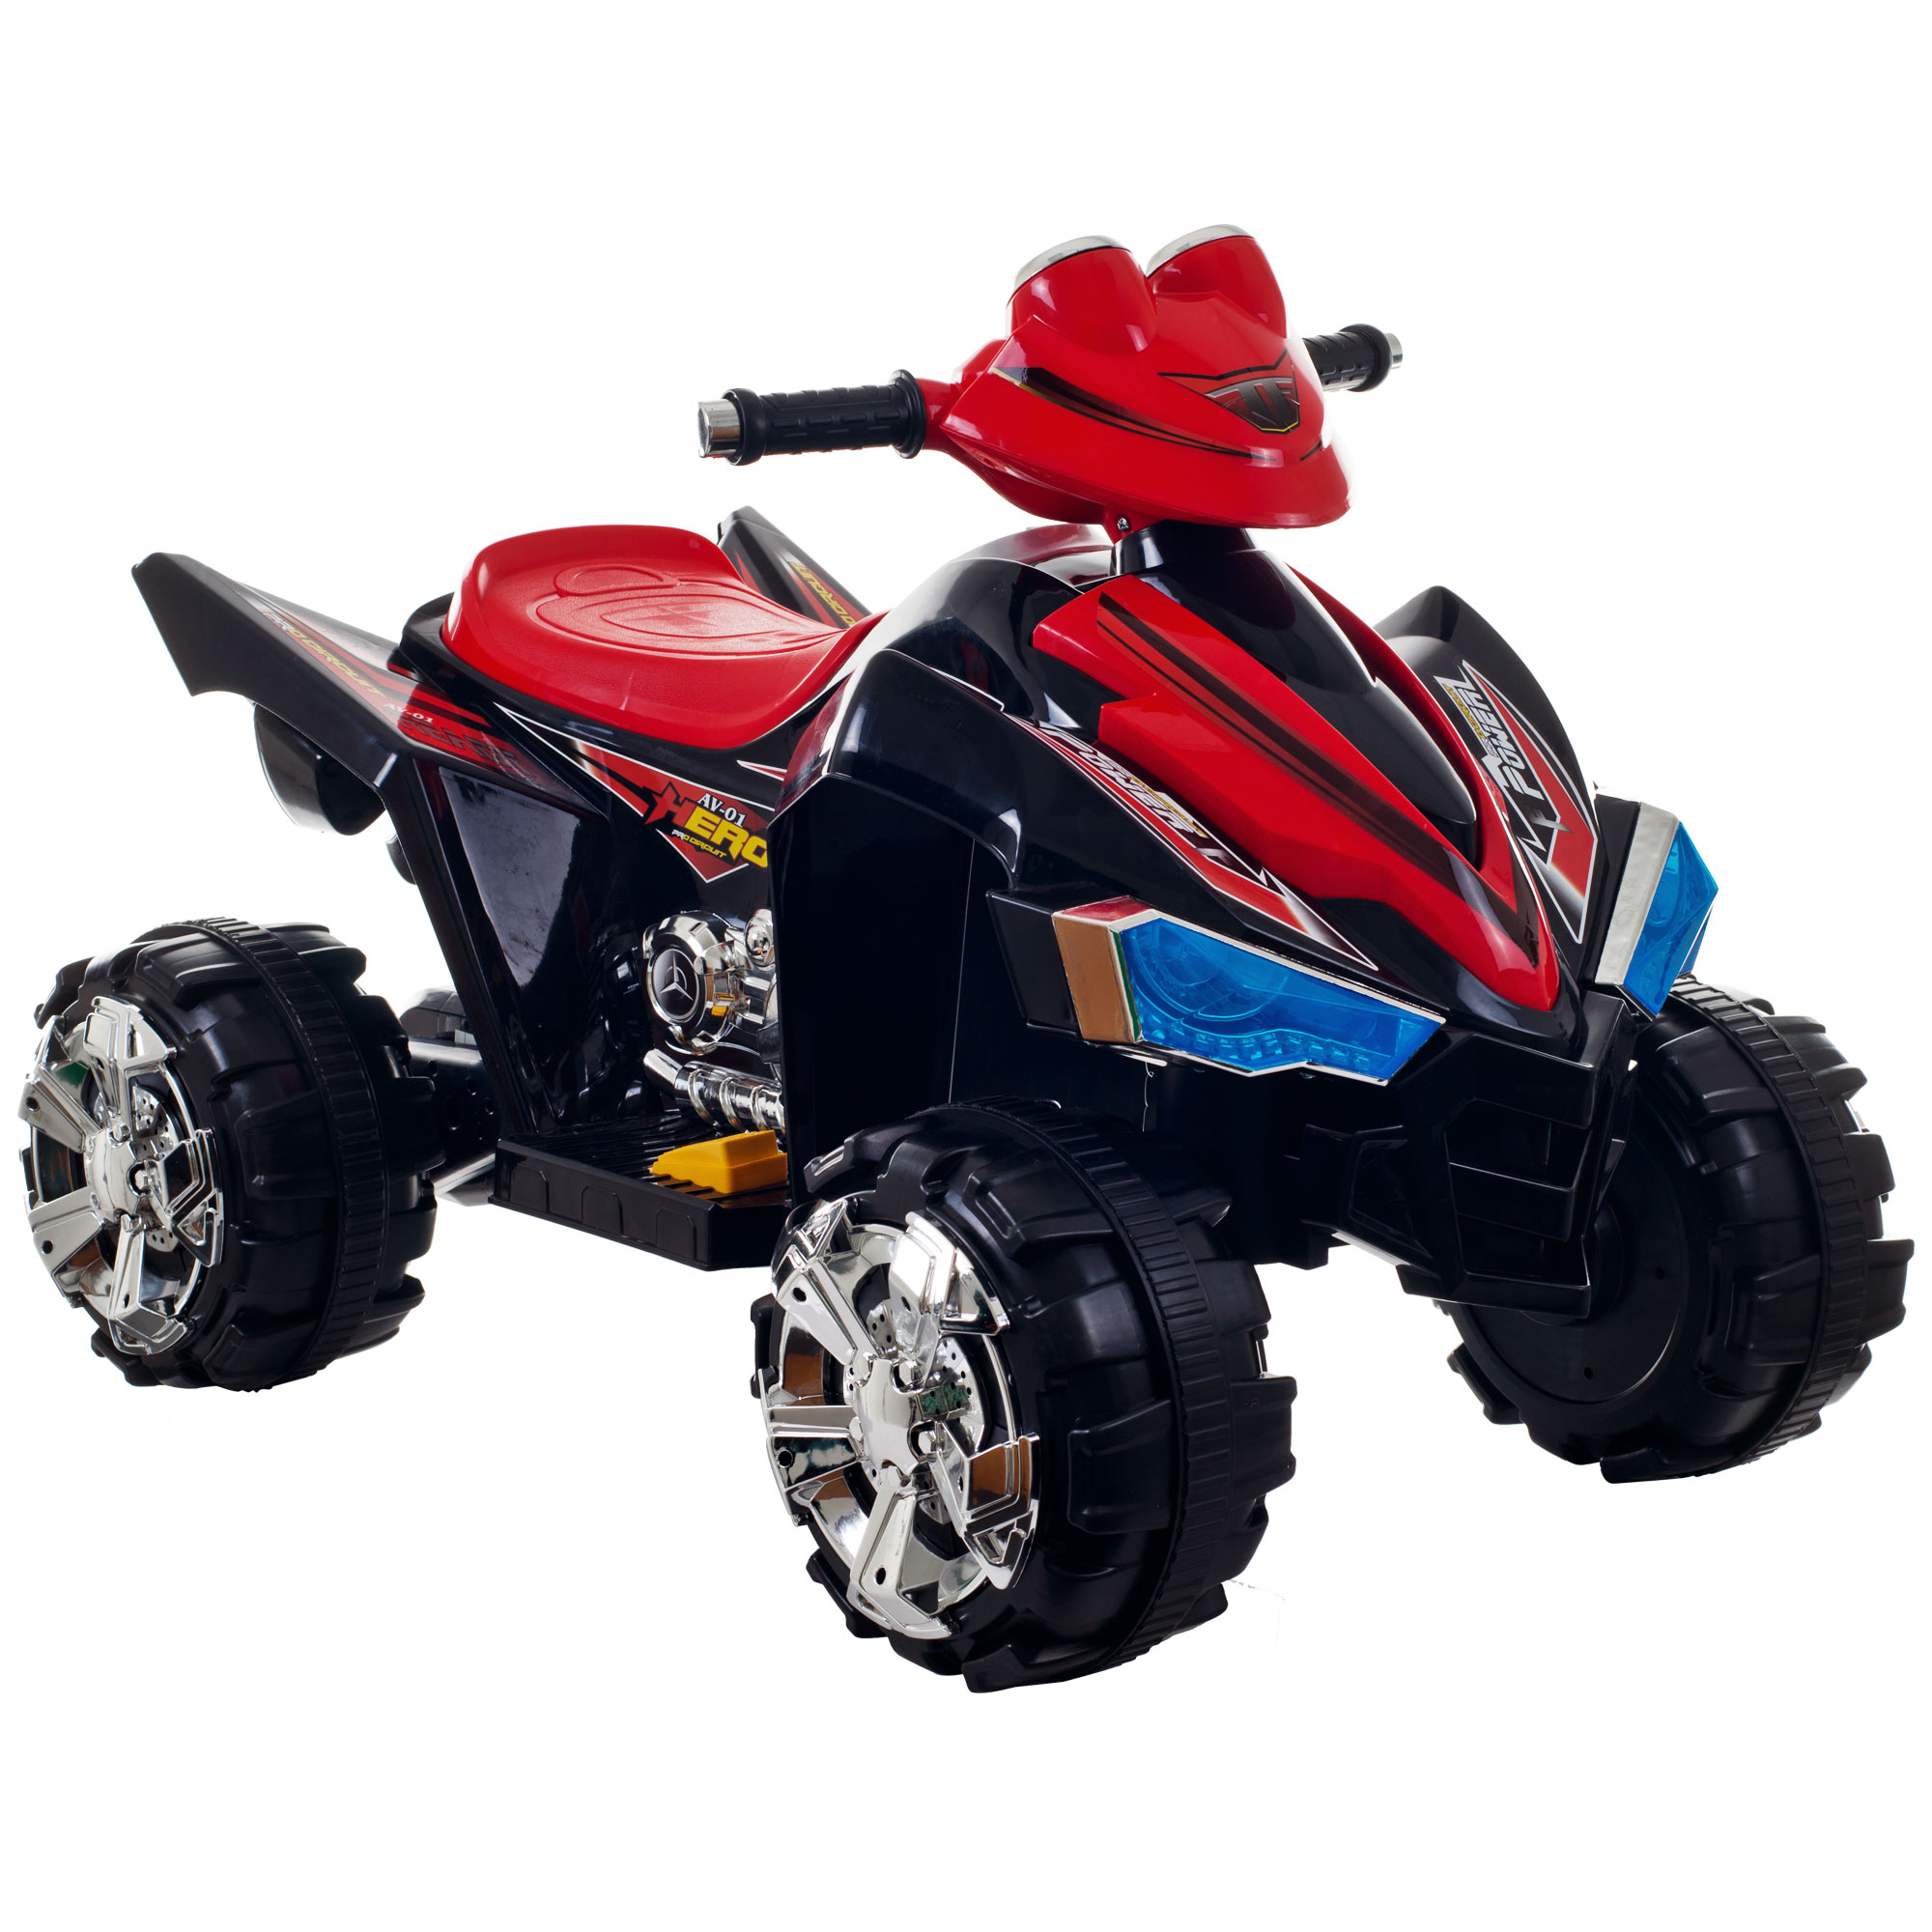 Ride On Toy Quad, Battery Powered Ride On Toy ATV Four Wheeler With Sound Effects by Hey! Play! – Toys for Boys and Girls, 2 - 5 Year Olds (Black)